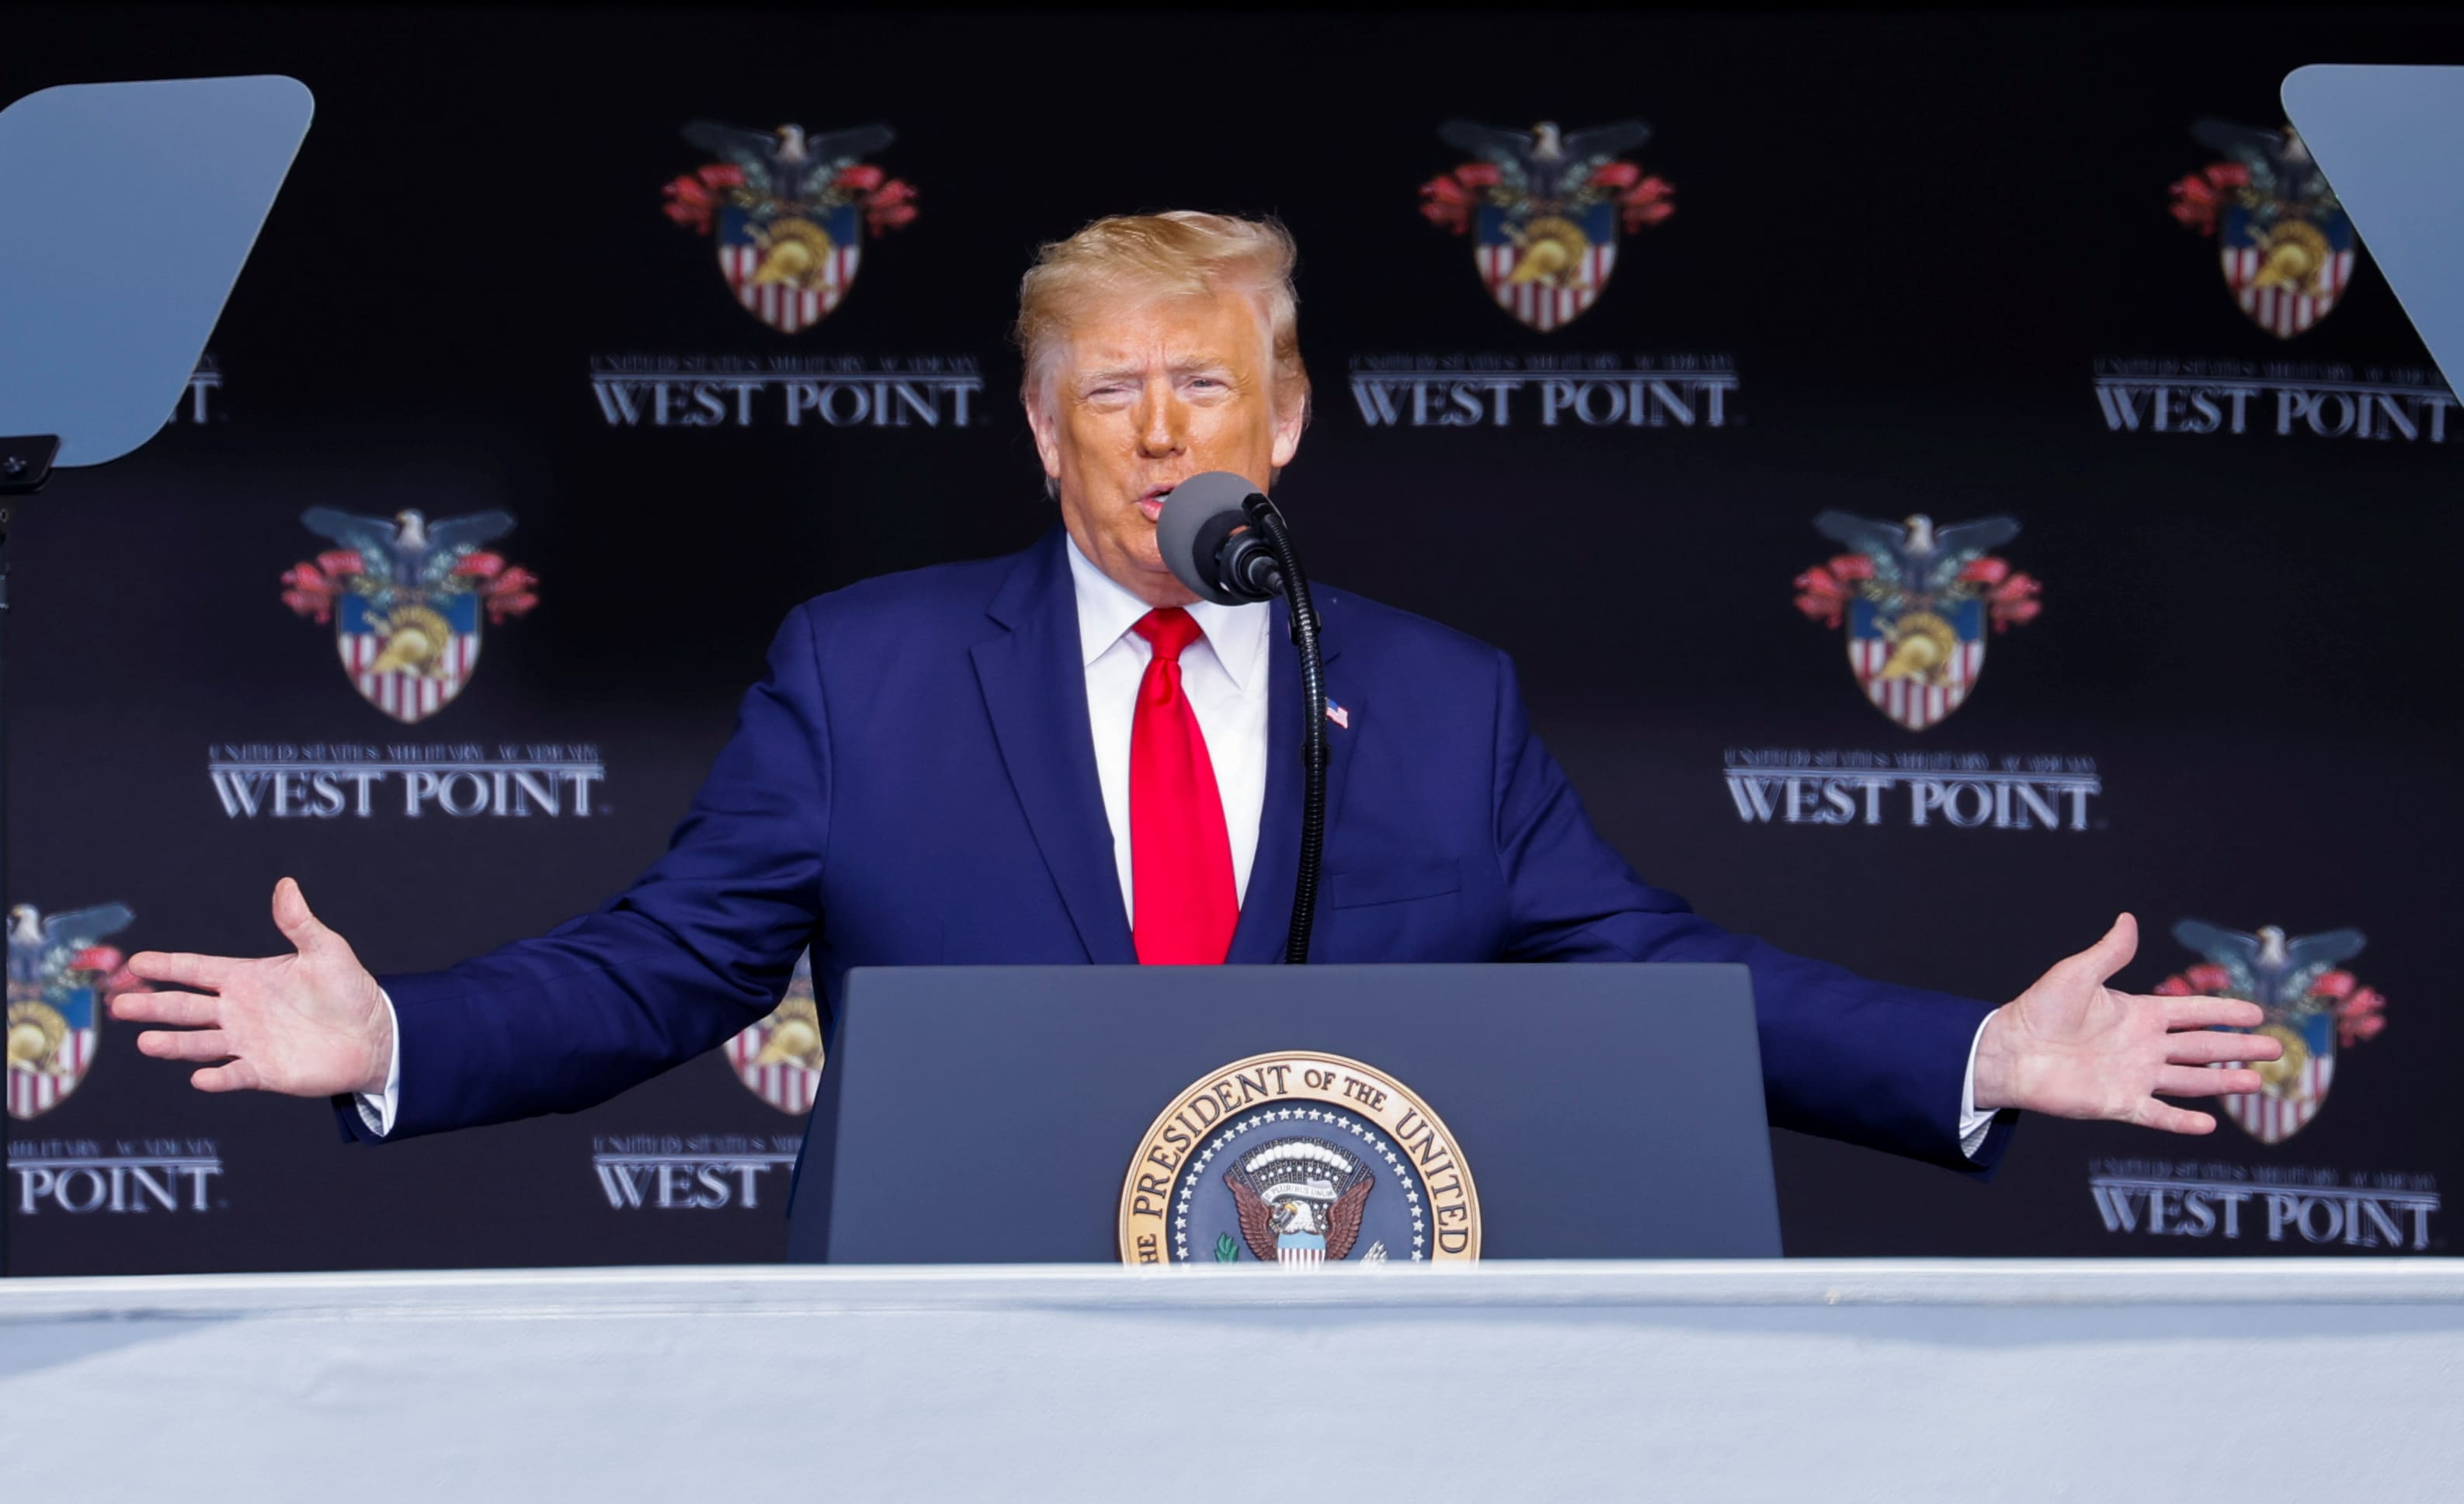 Photo of Trump addresses West Point graduates after criticism from alumni and controversial church photo op